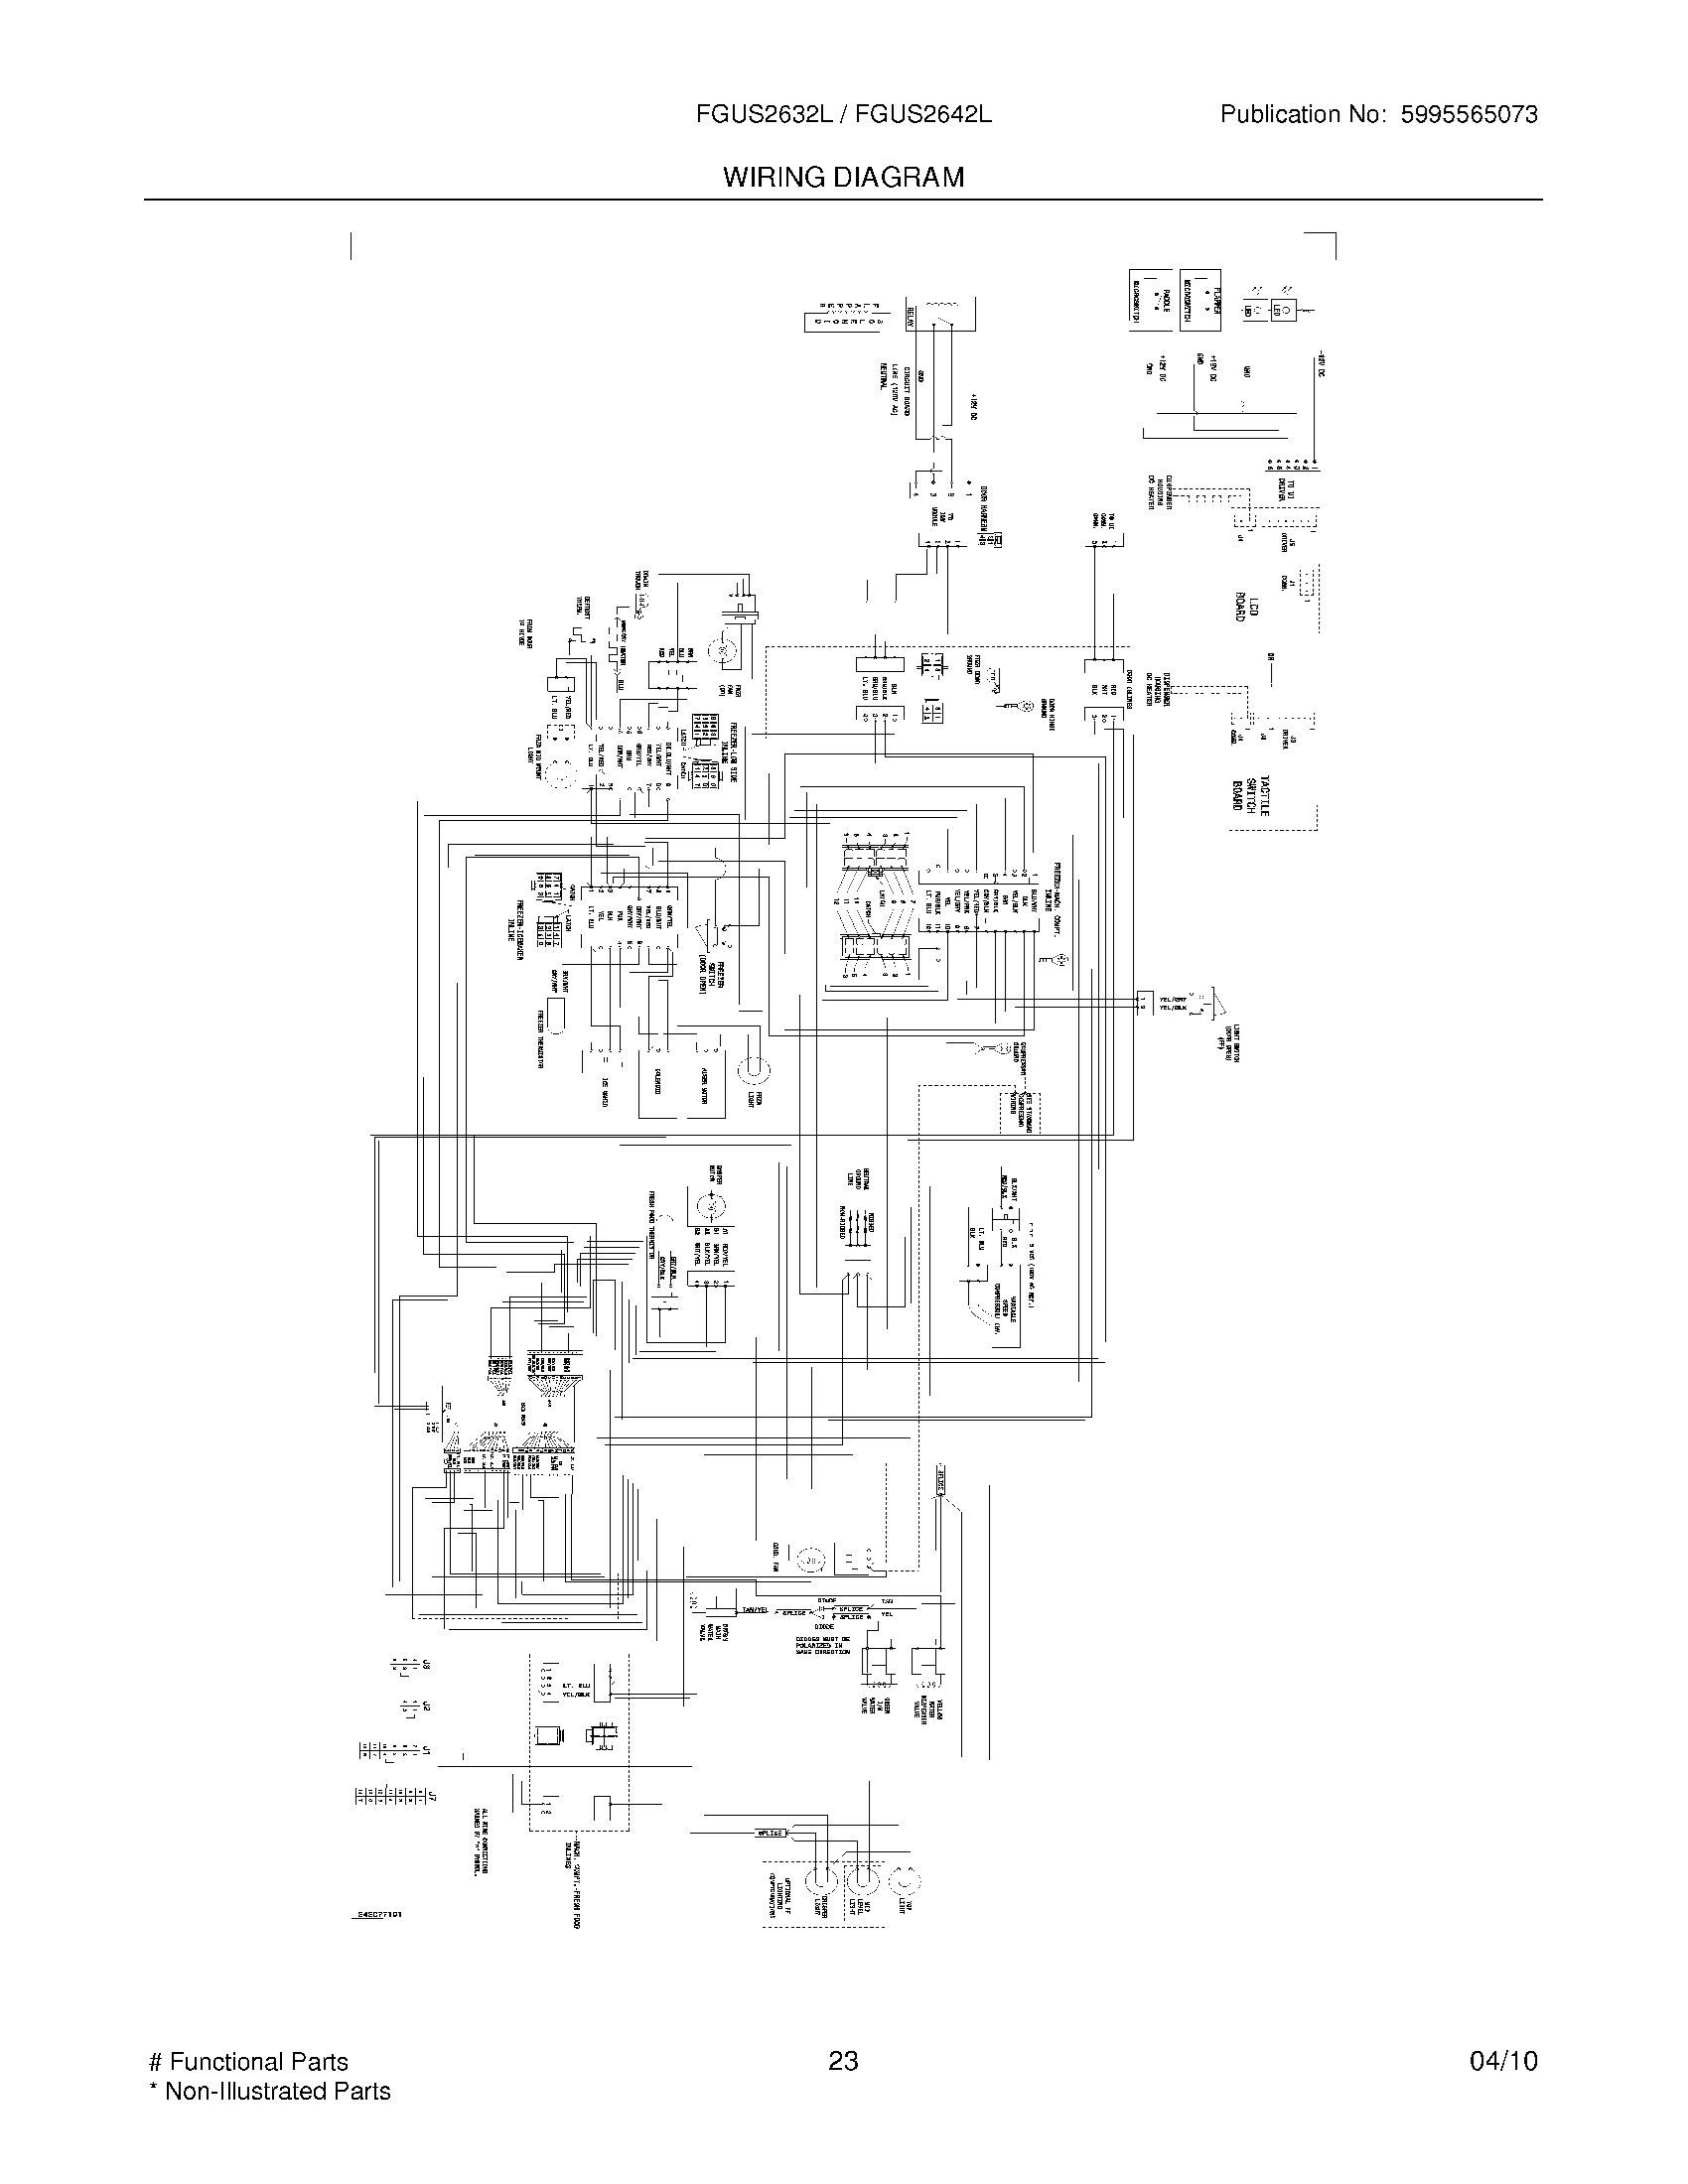 Electrolux Wiring Diagram Wiring Diagram Photos For Help Your